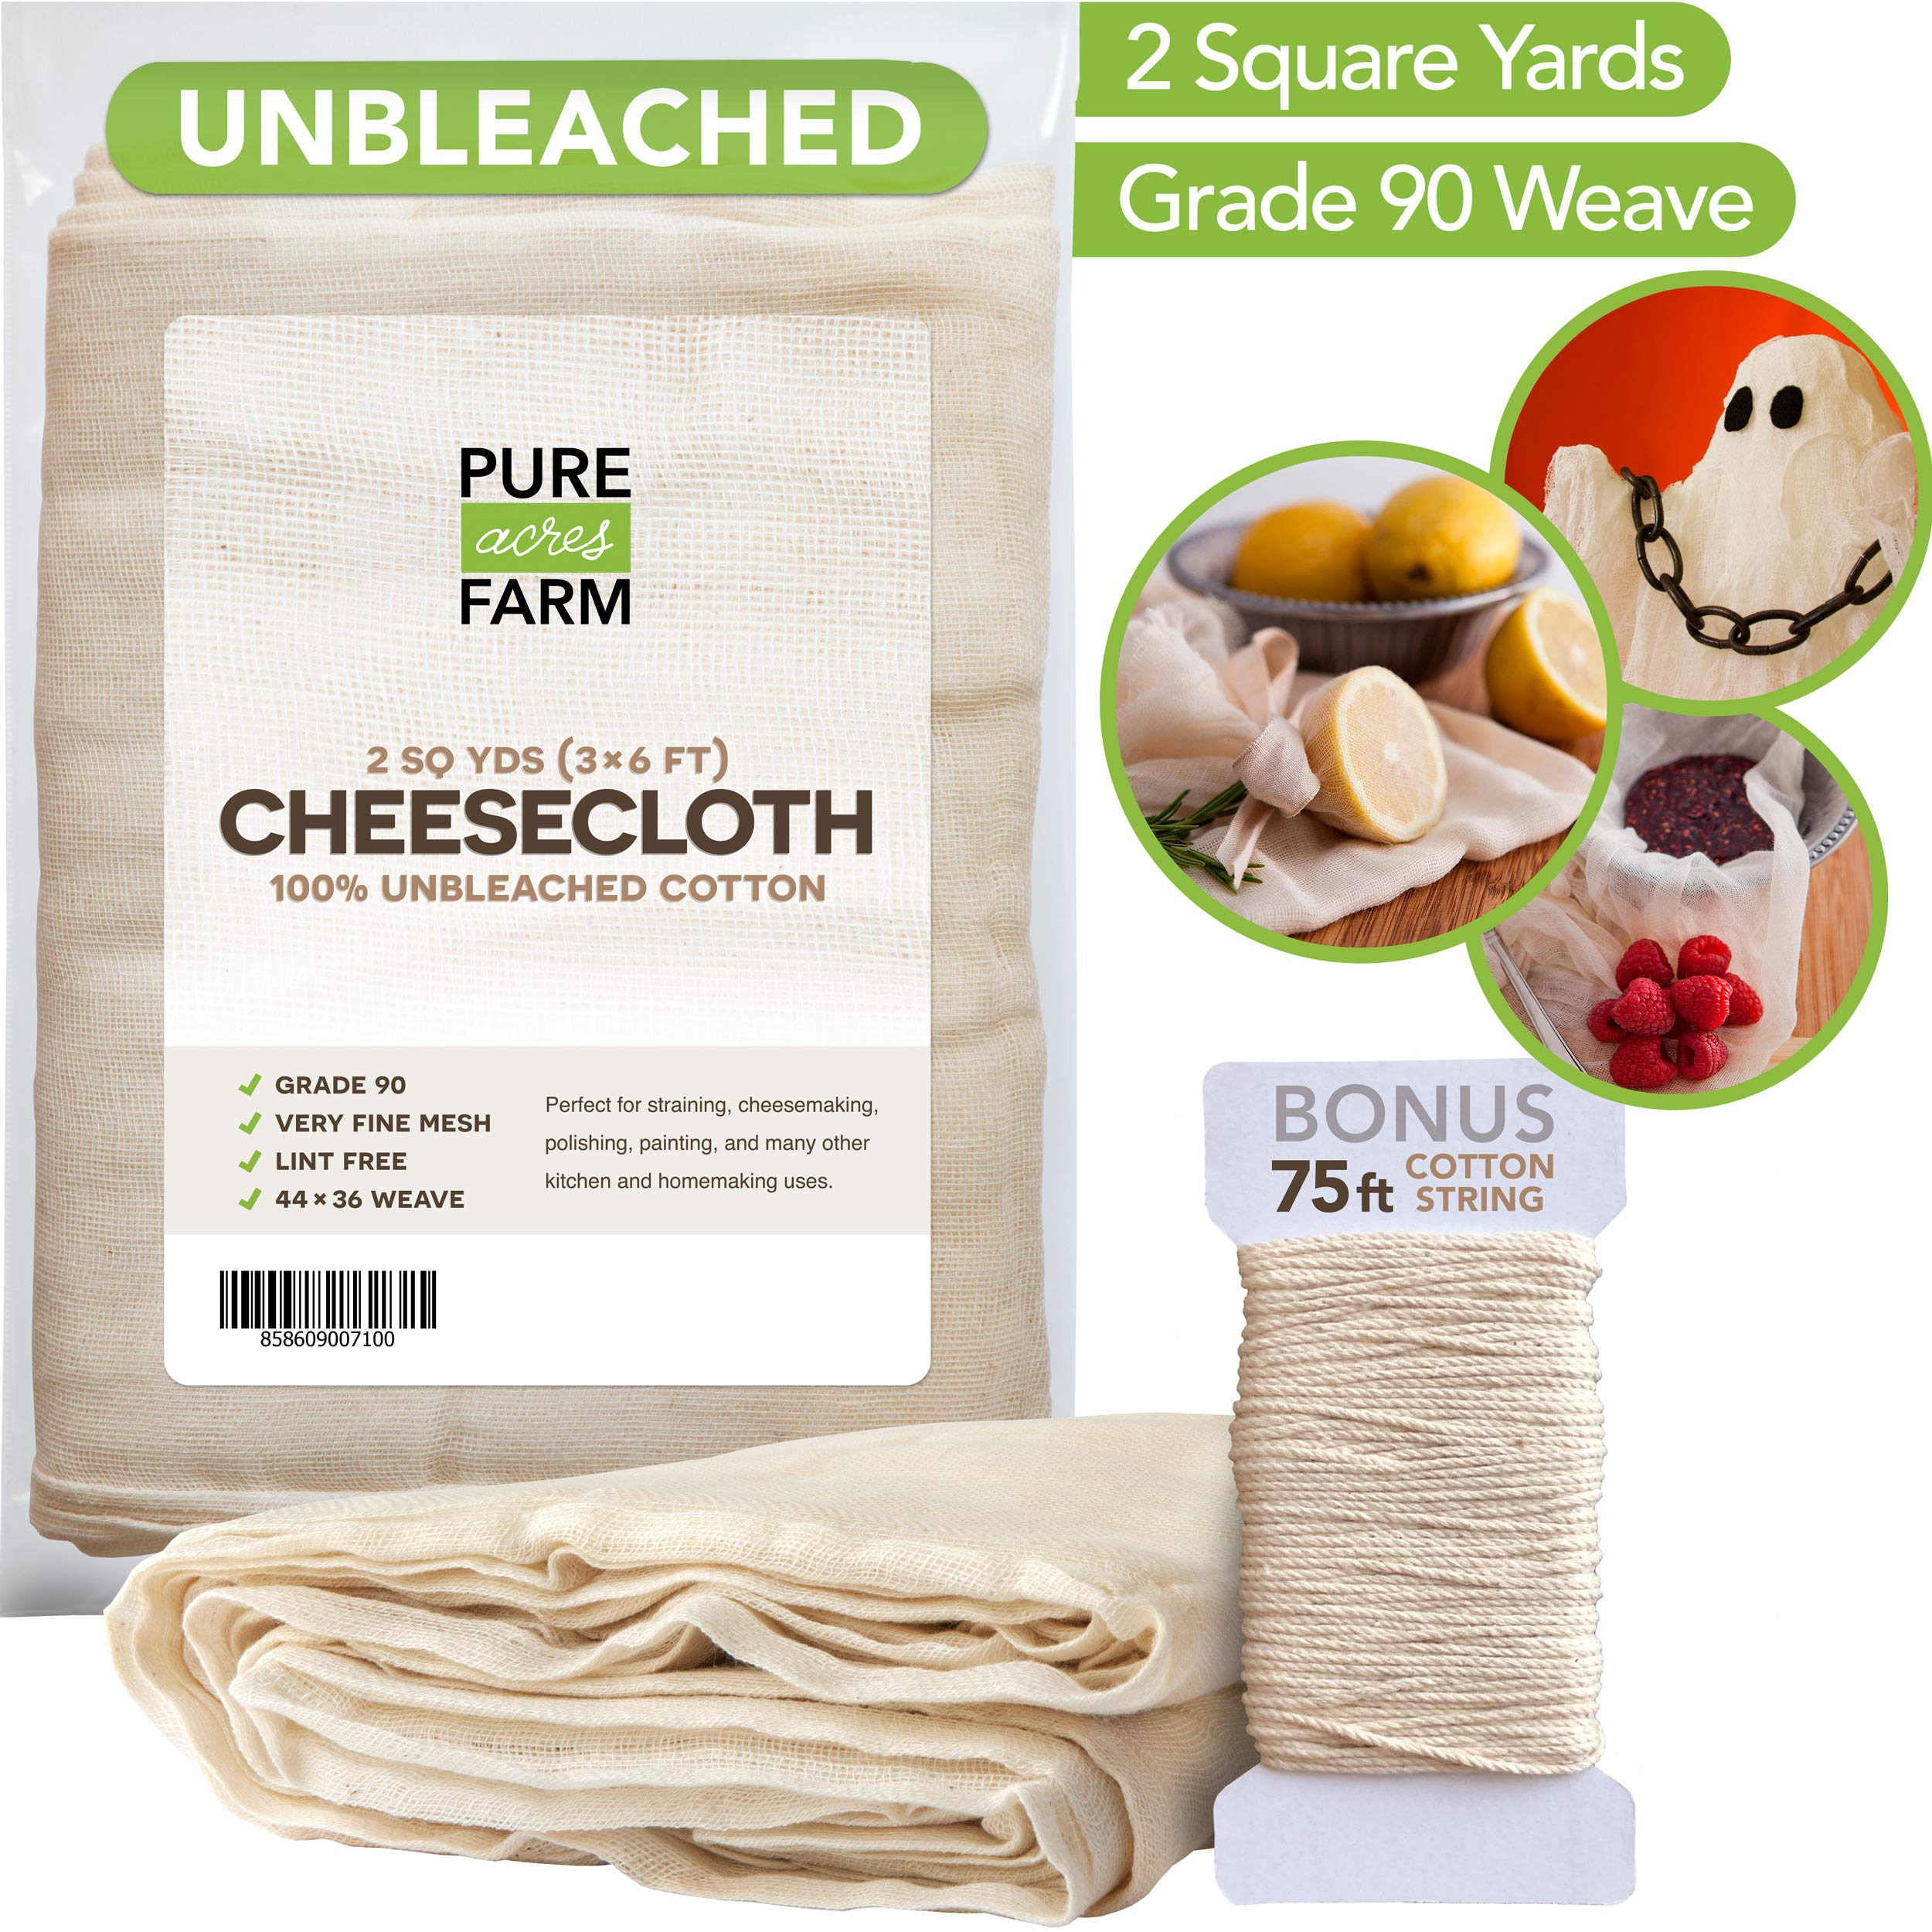 Cheesecloth - 2 Yards - Fine Weave: Grade 90-100% Unbleached Cotton - Filter - Strain - Reusable (Cotton String Included)